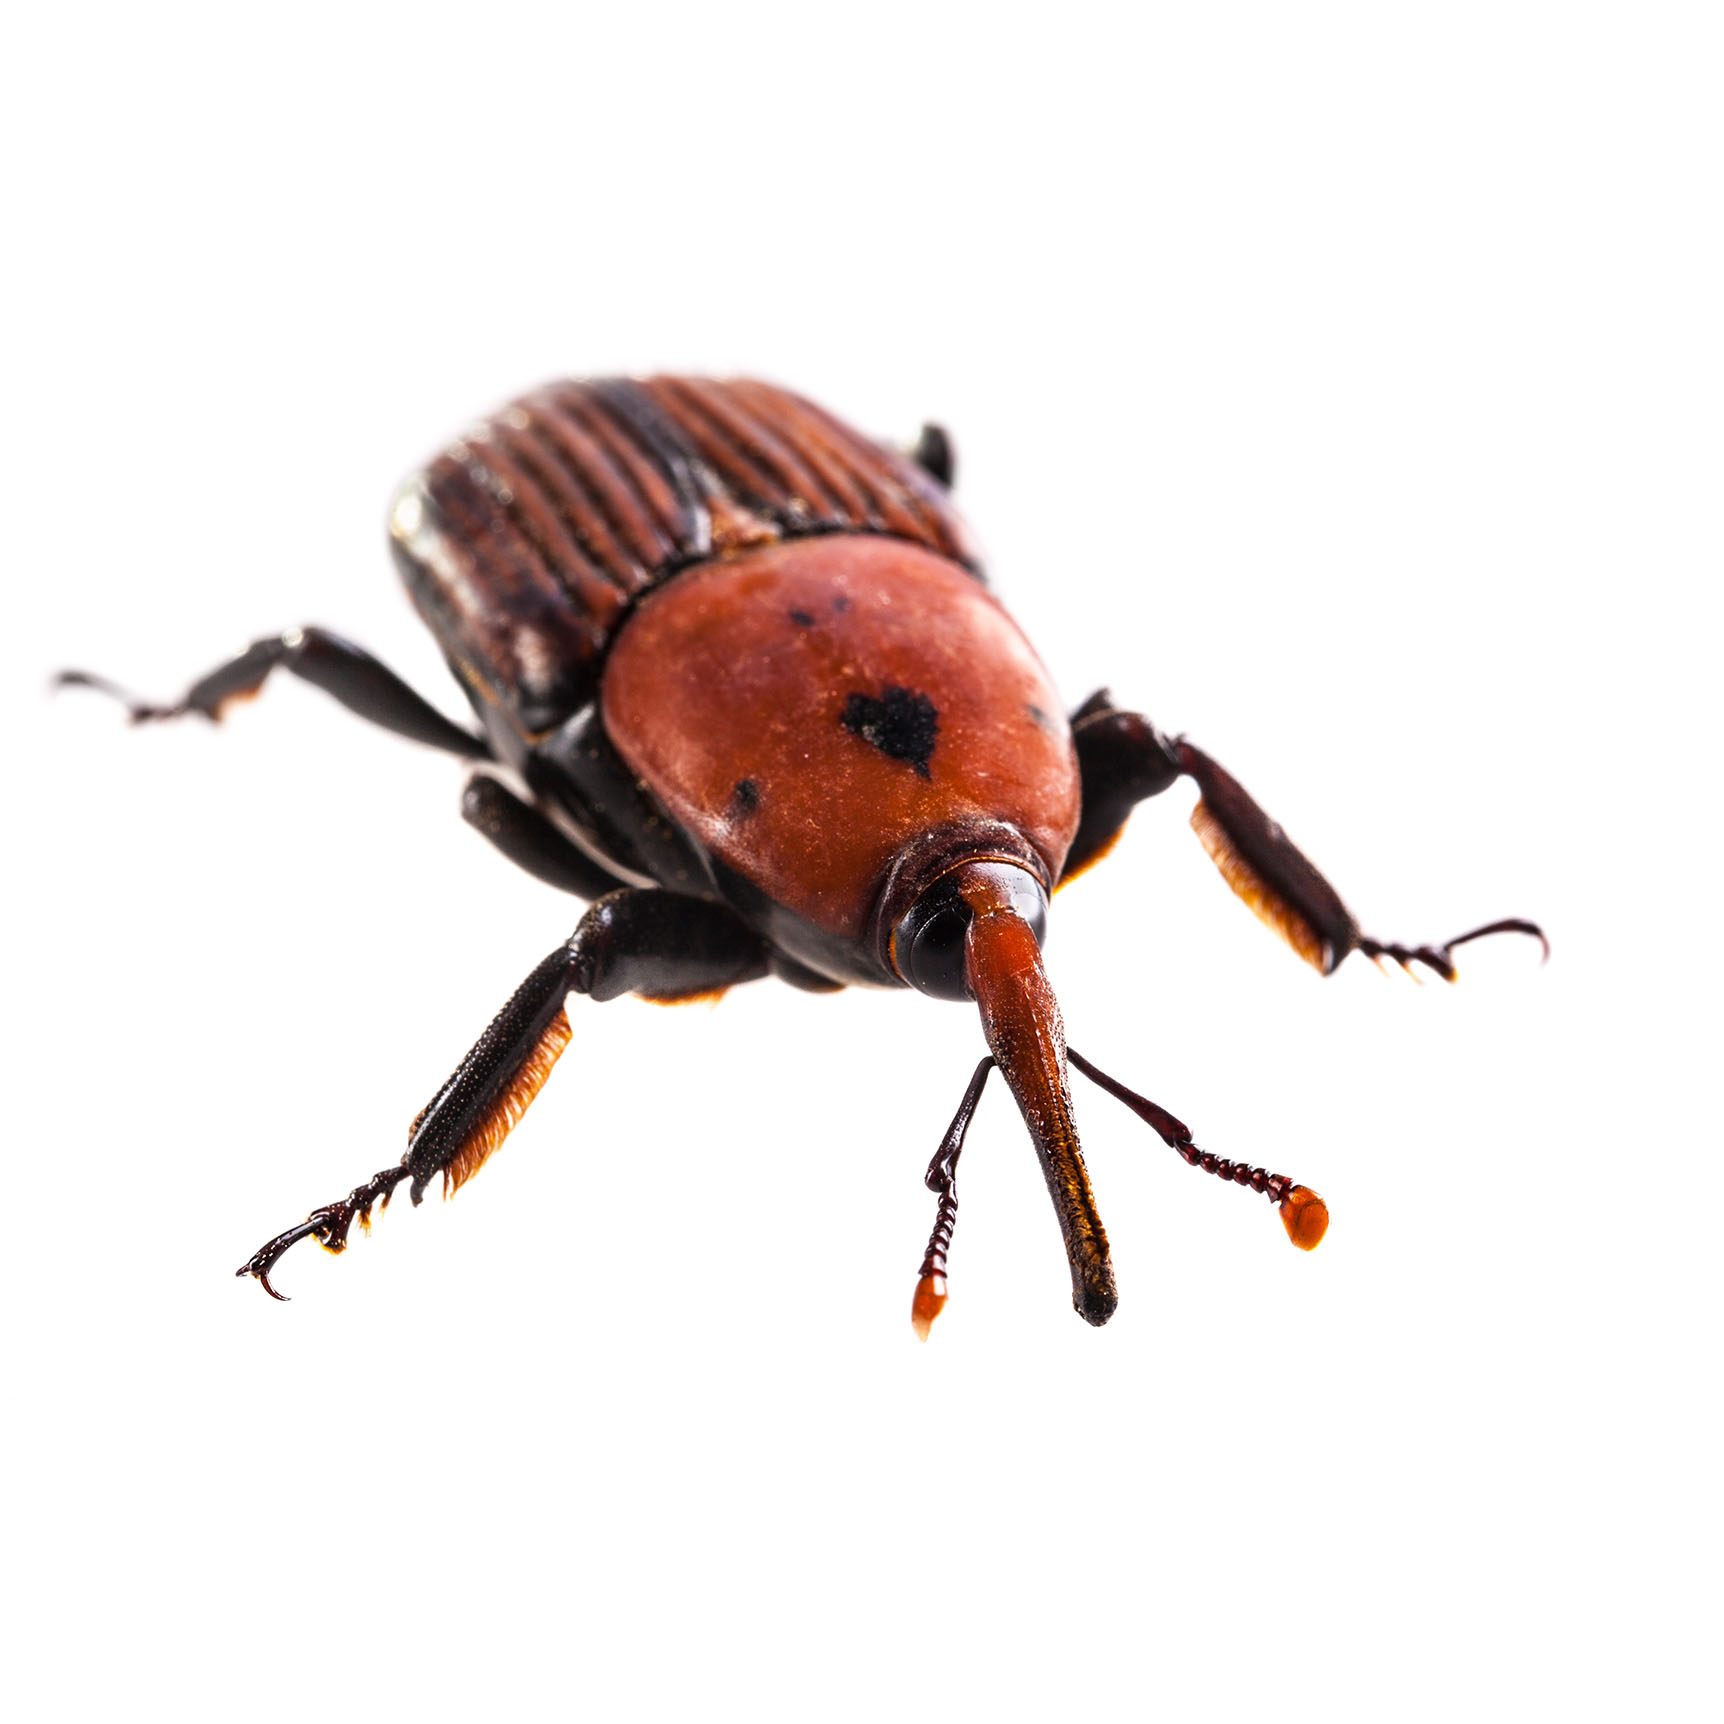 Weevil pest control pasco county